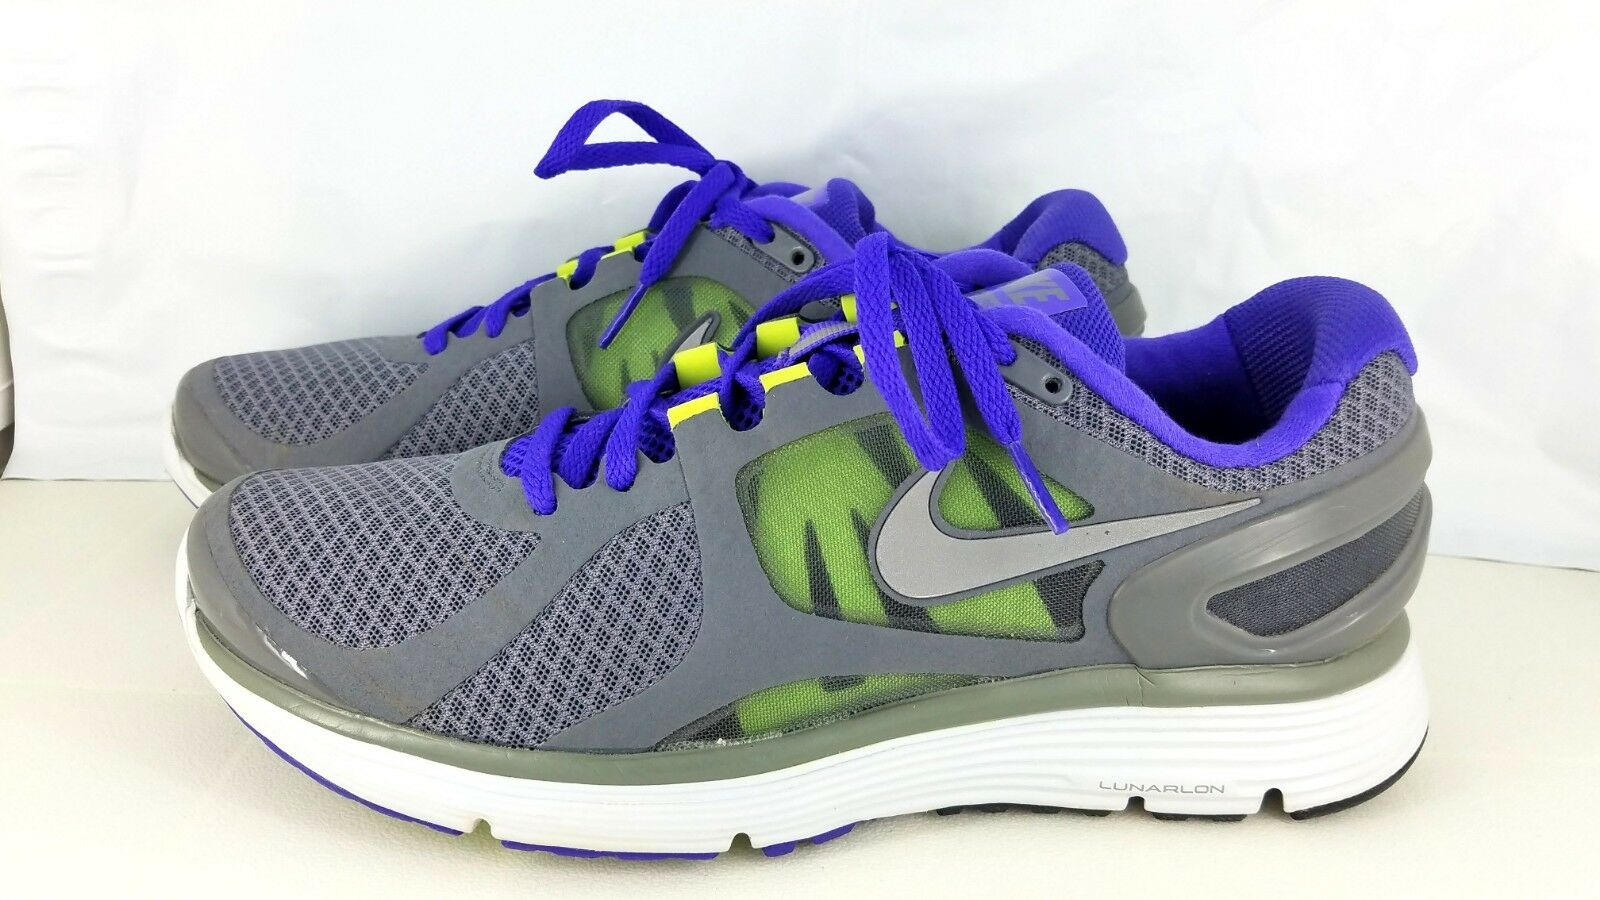 Nike Lunareclipse+ 2 Cool Grey Reflect Silver-Pure Purple 487983-005 Men's SZ 8